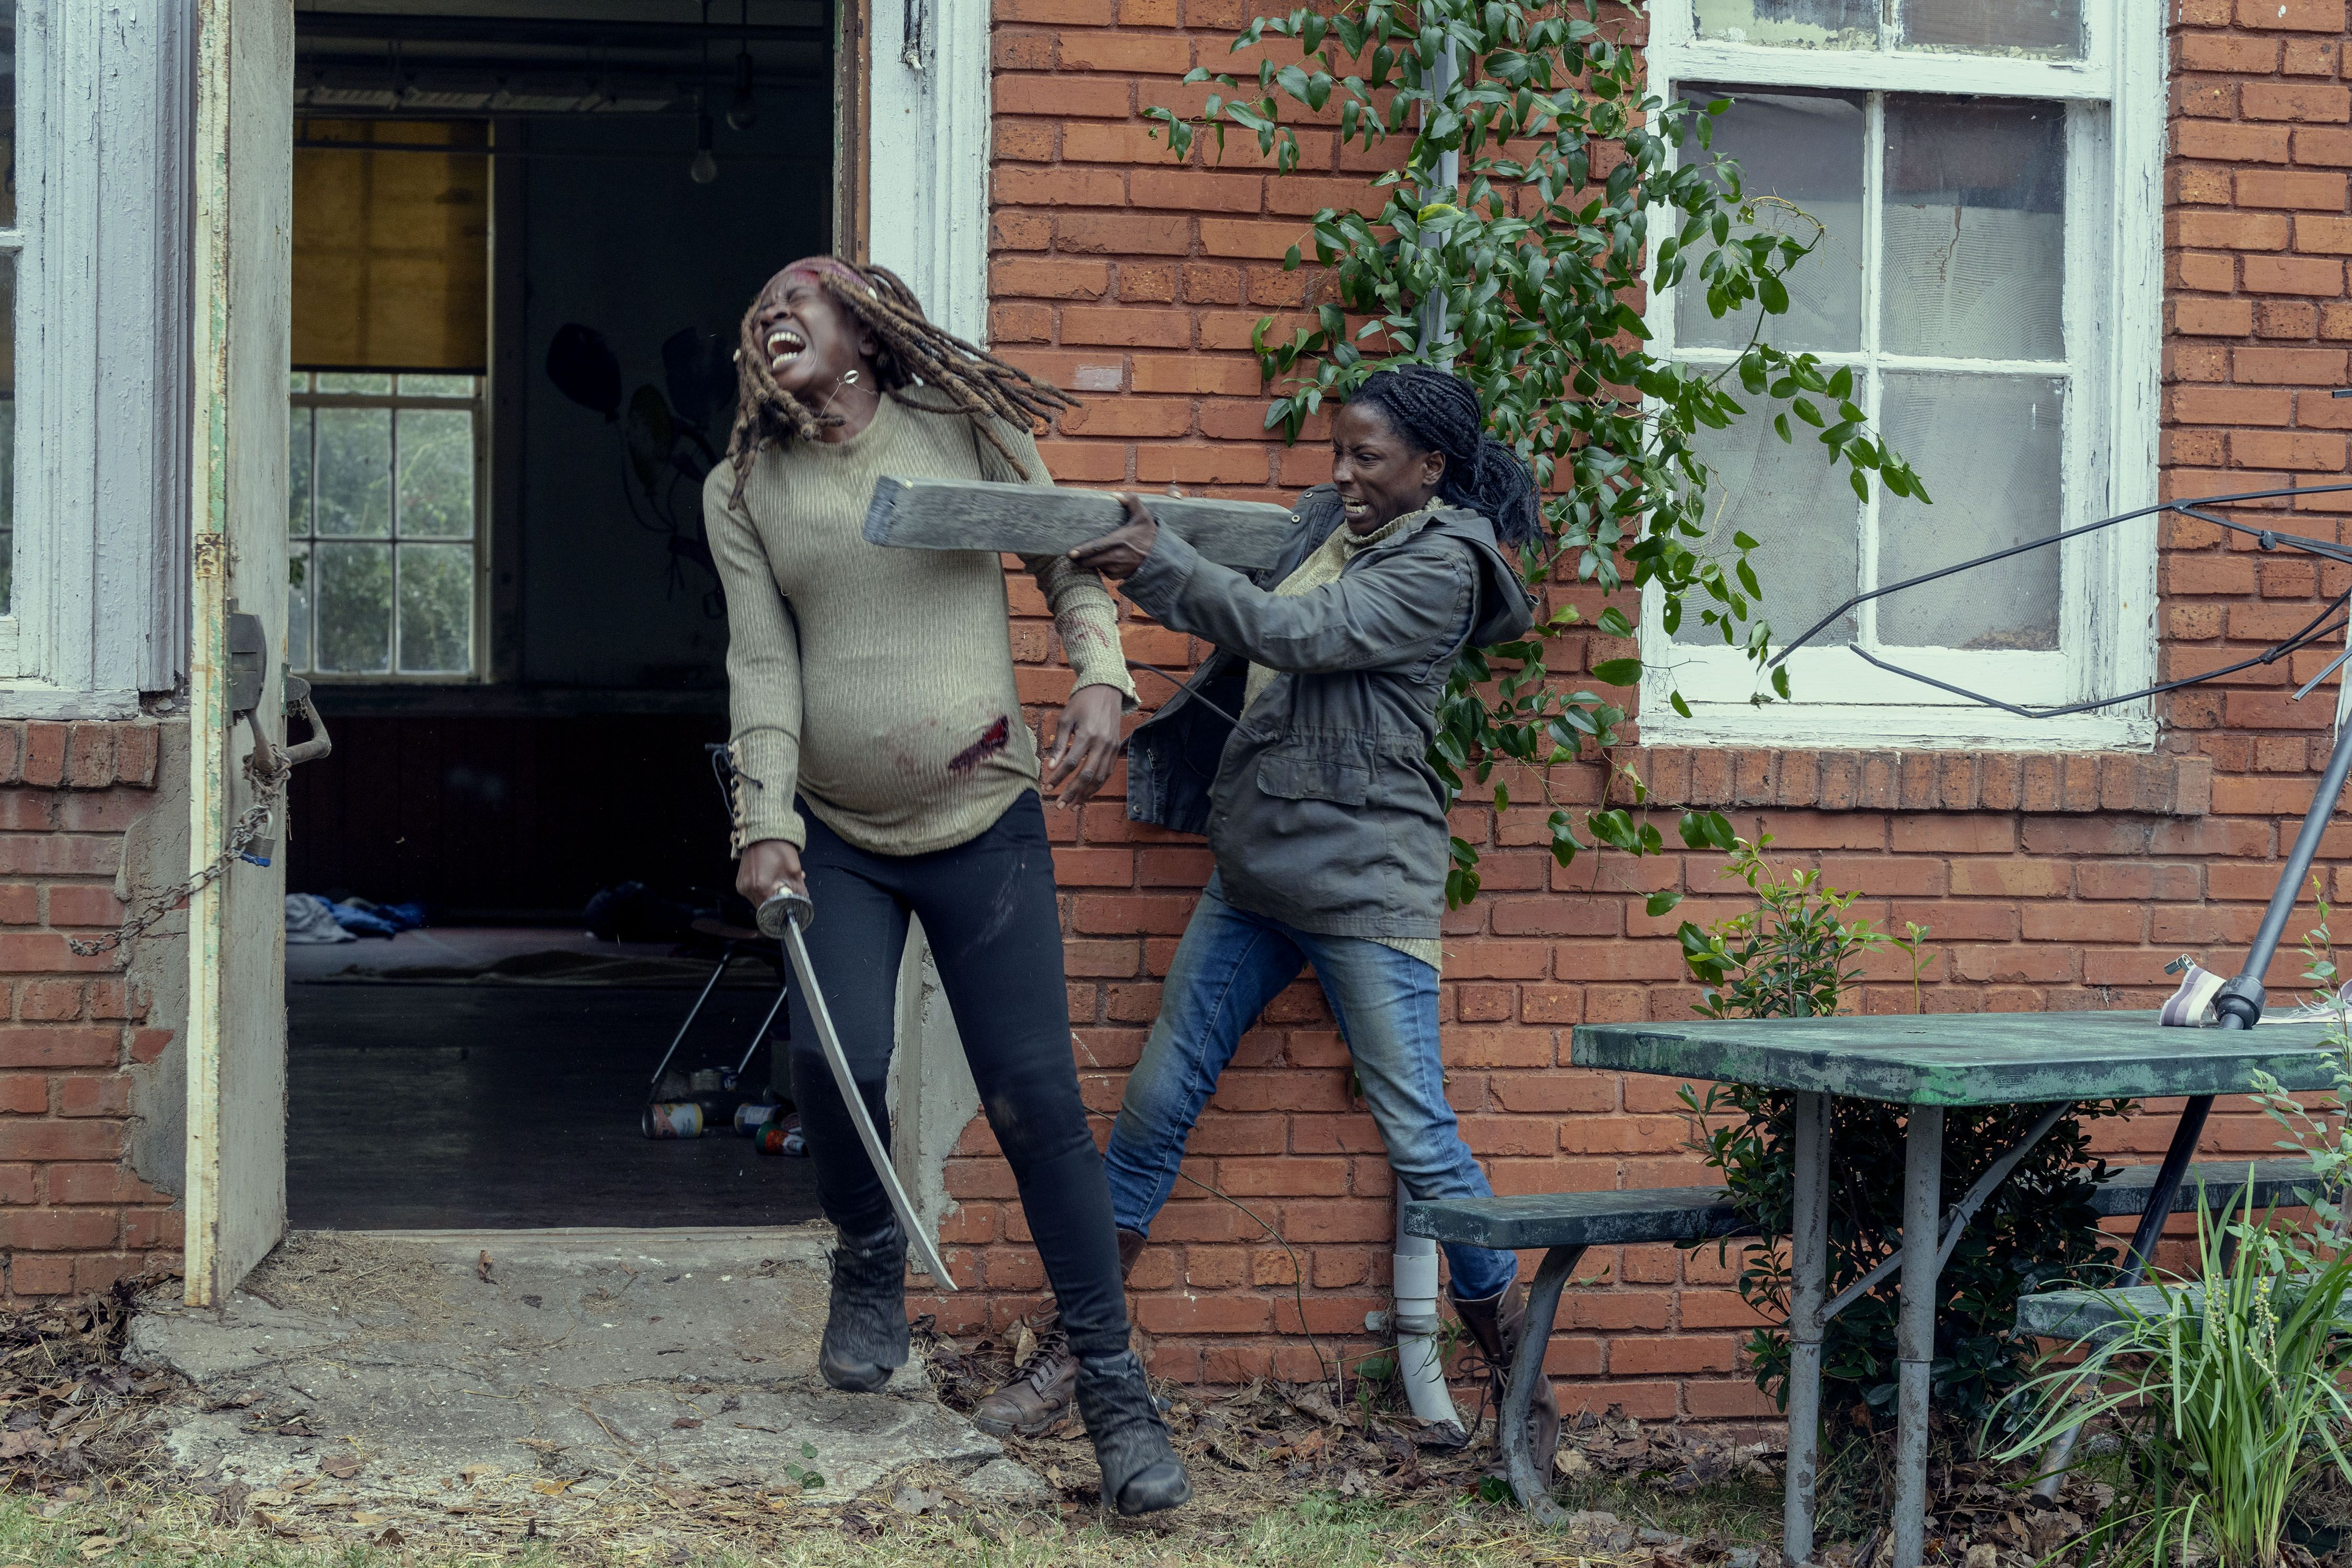 The Walking Dead, Survival Rule Of The Week: Watch out for your friends